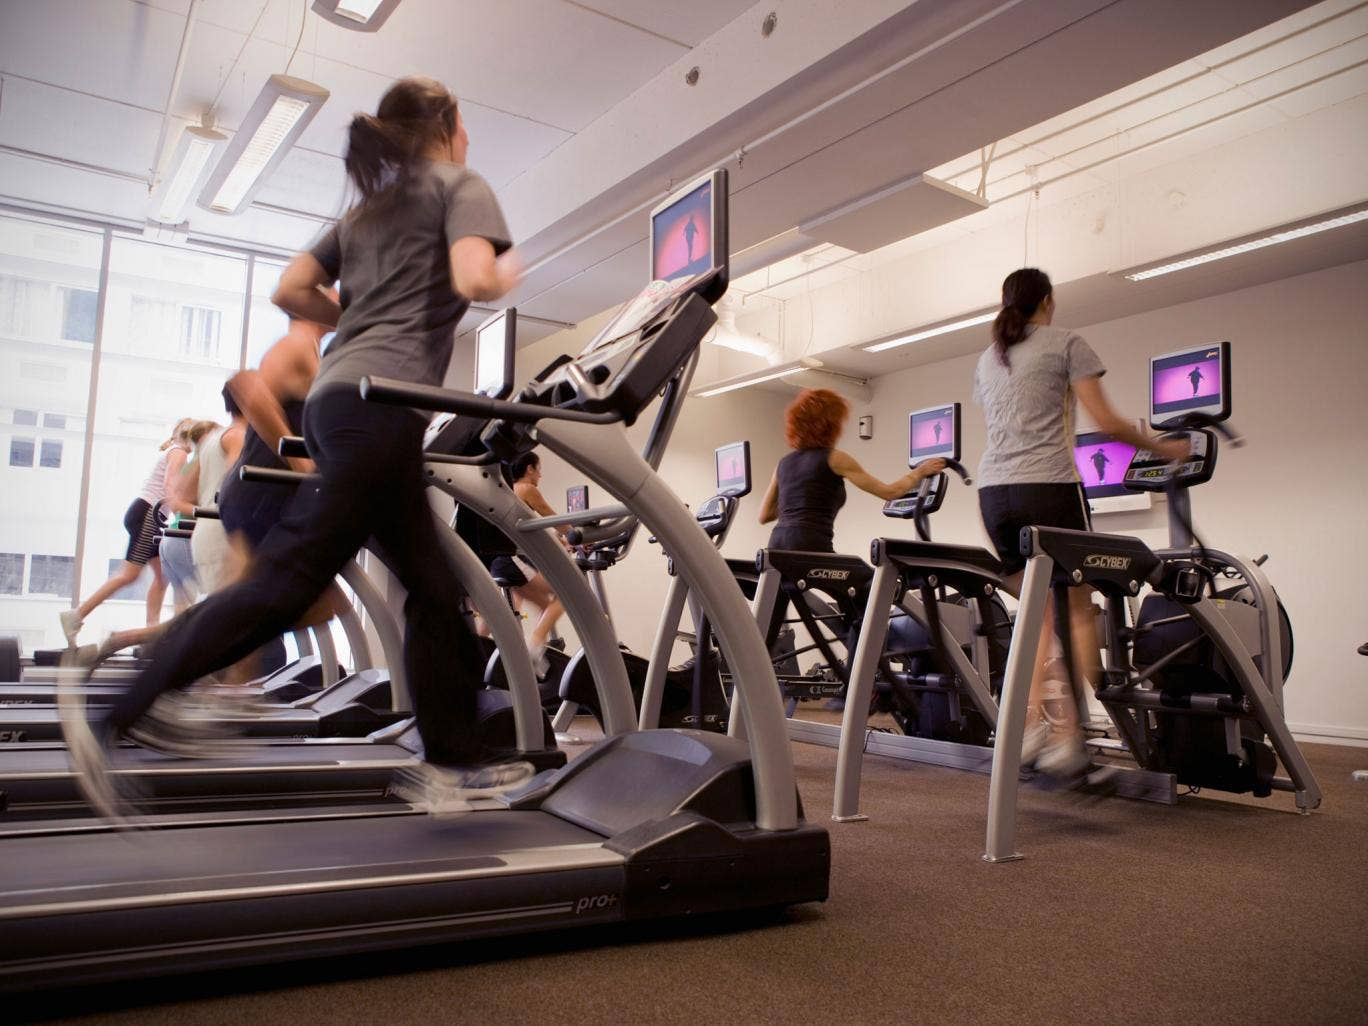 Can music really affect your workout?